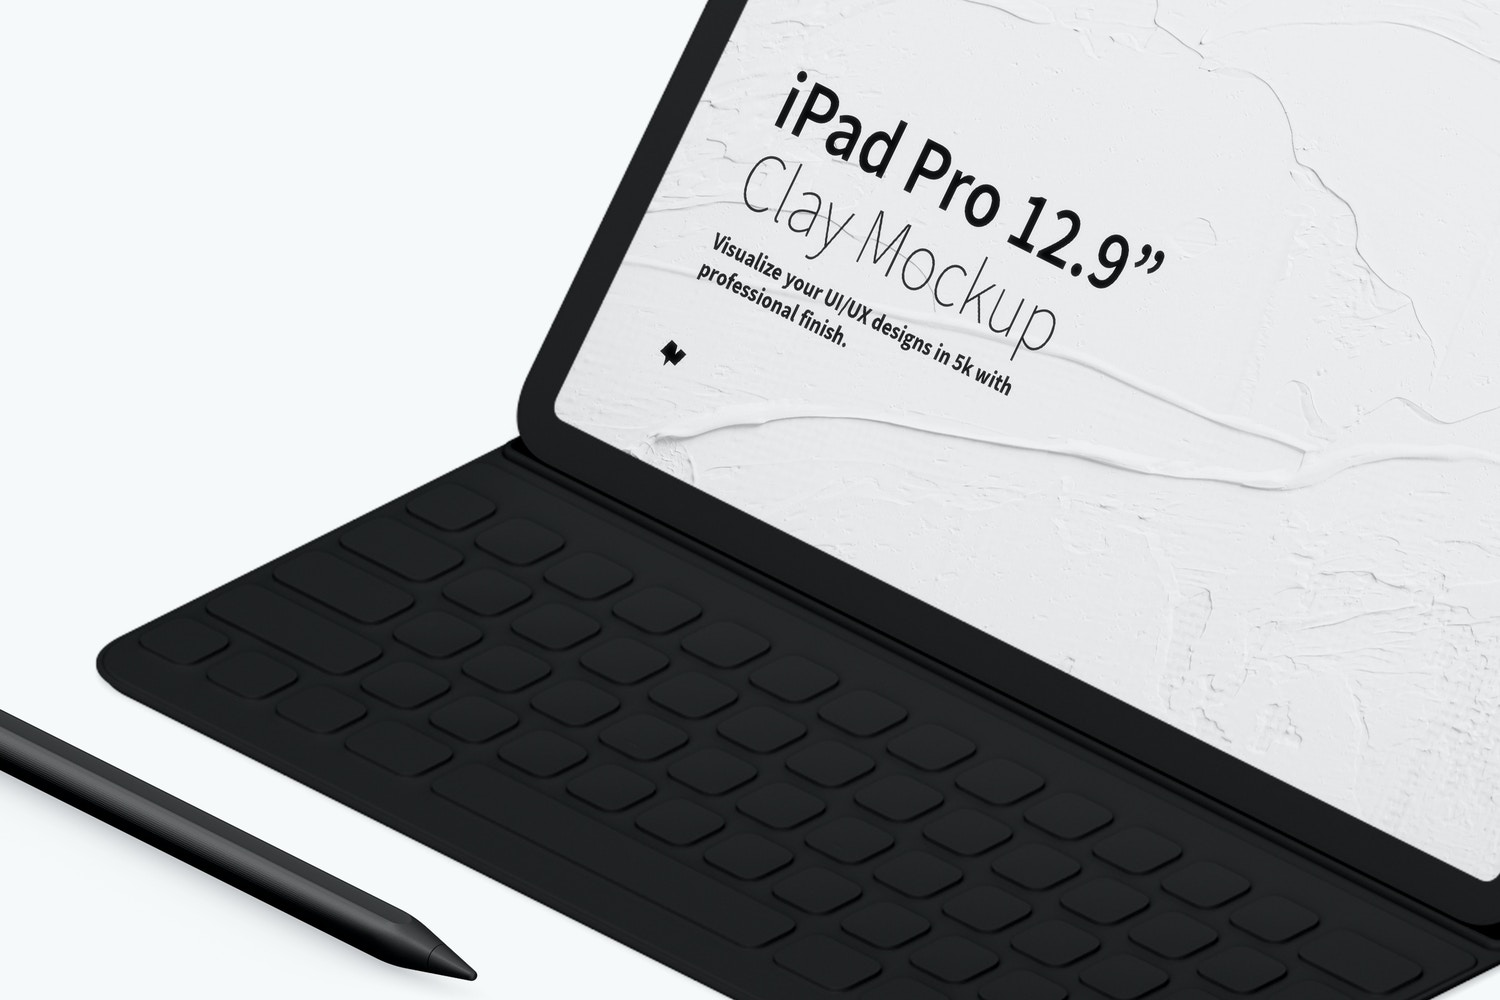 "Clay iPad Pro 12.9"" Mockup, Isometric Right View With Keyboard (3) by Original Mockups on Original Mockups"